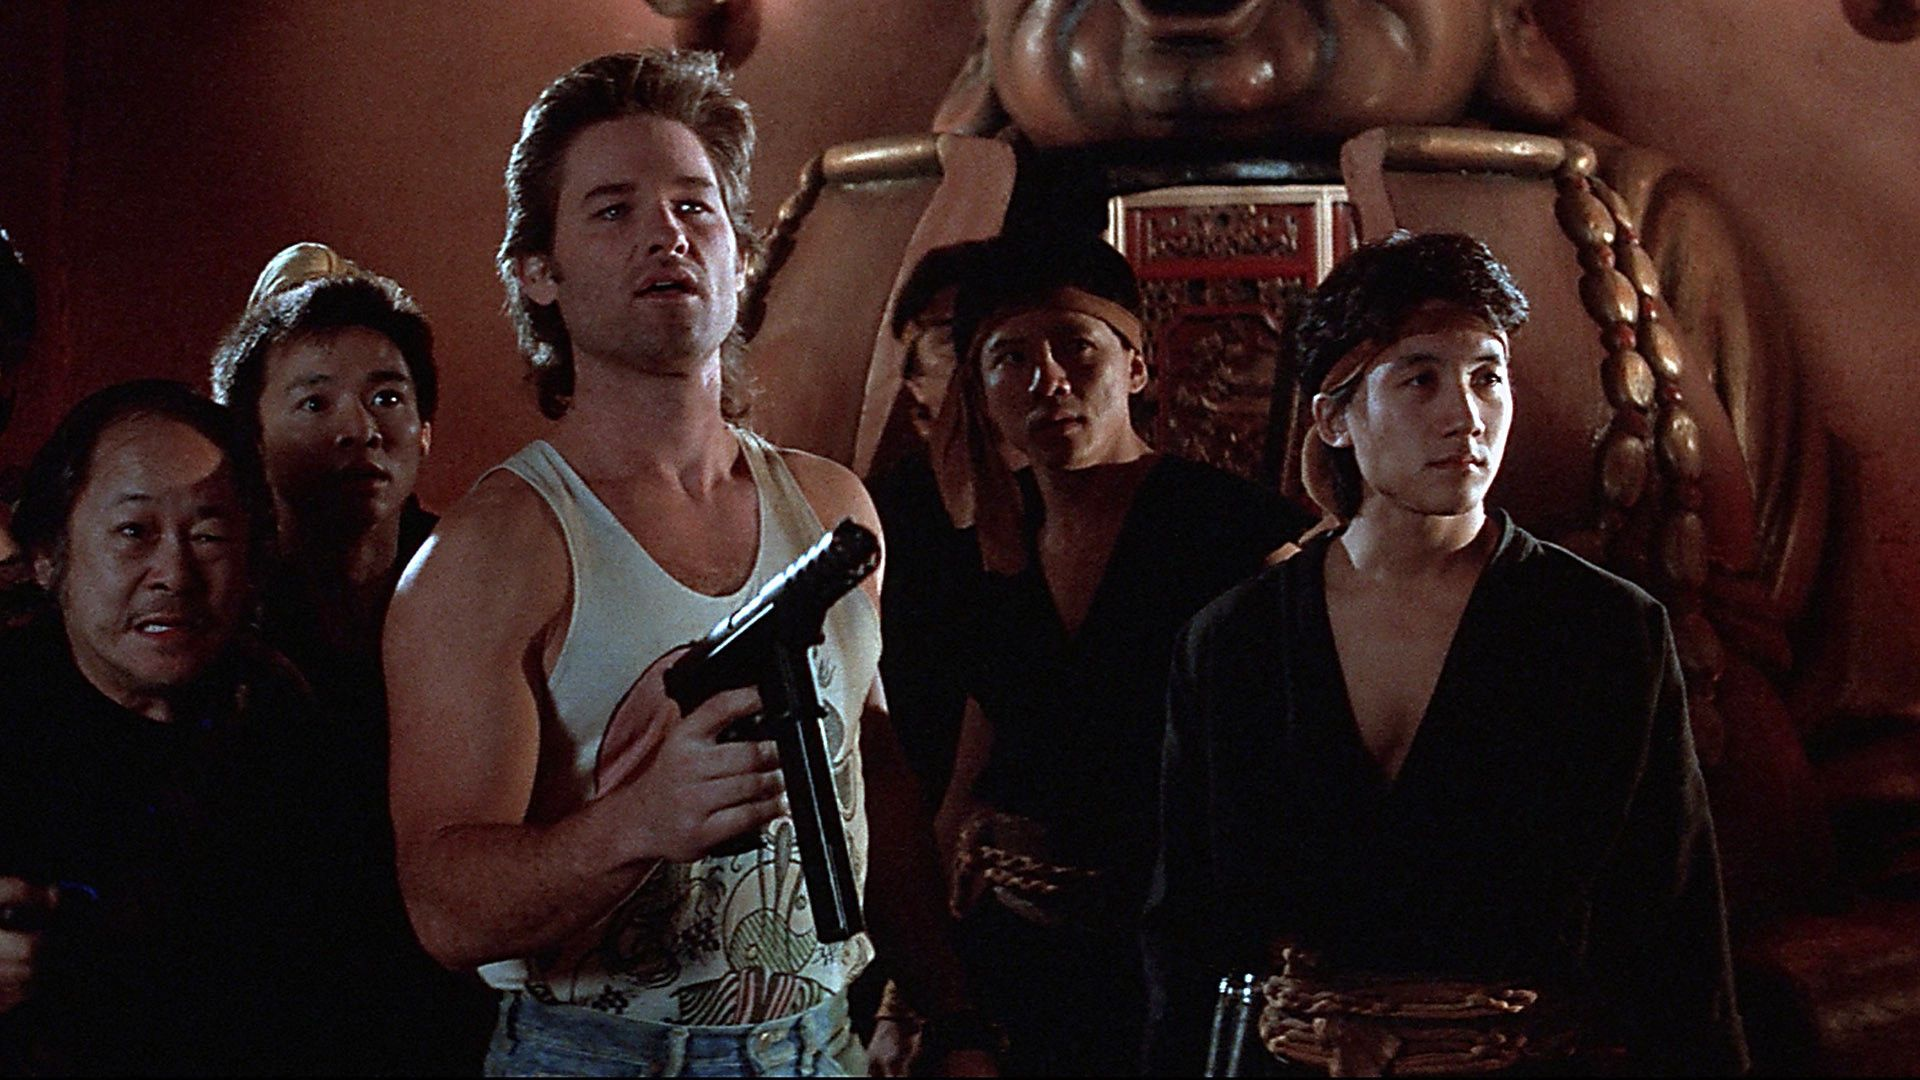 Dwayne Johnson S Big Trouble In Little China Will Not Be A Remake